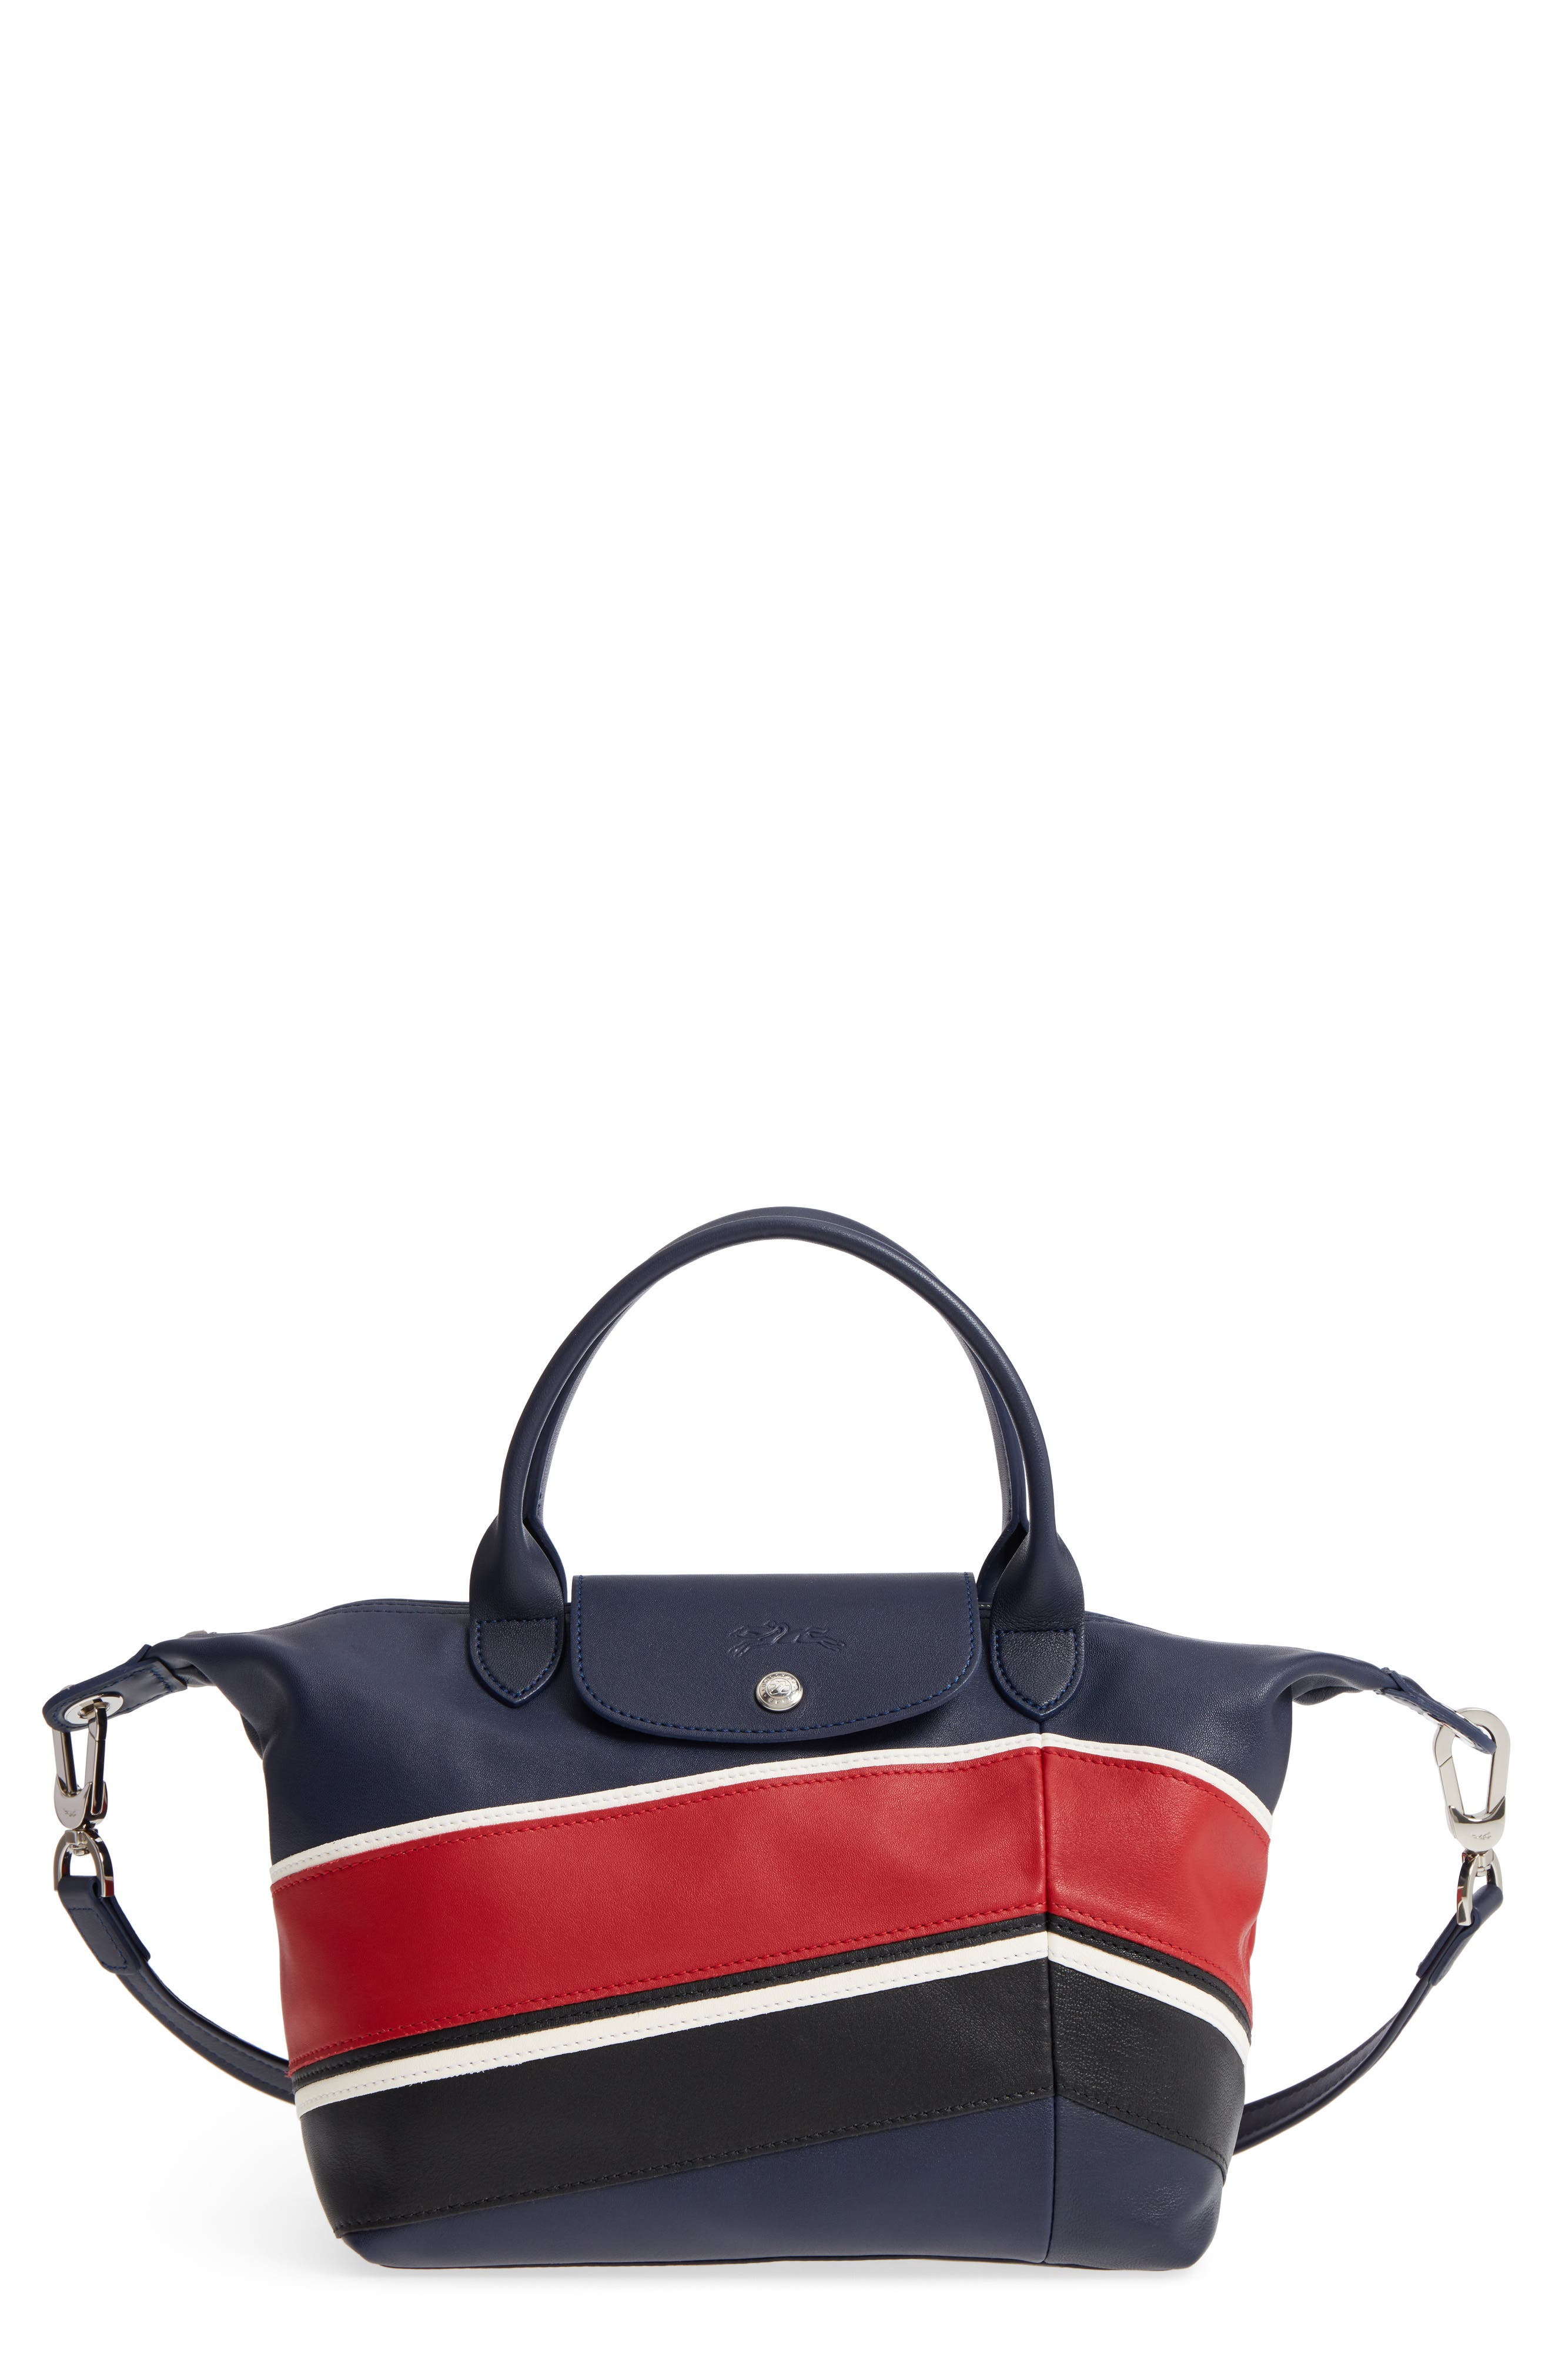 Alternate Image 1 Selected - Longchamp Small Le Pliage Cuir - Chevron Top Handle Leather Tote